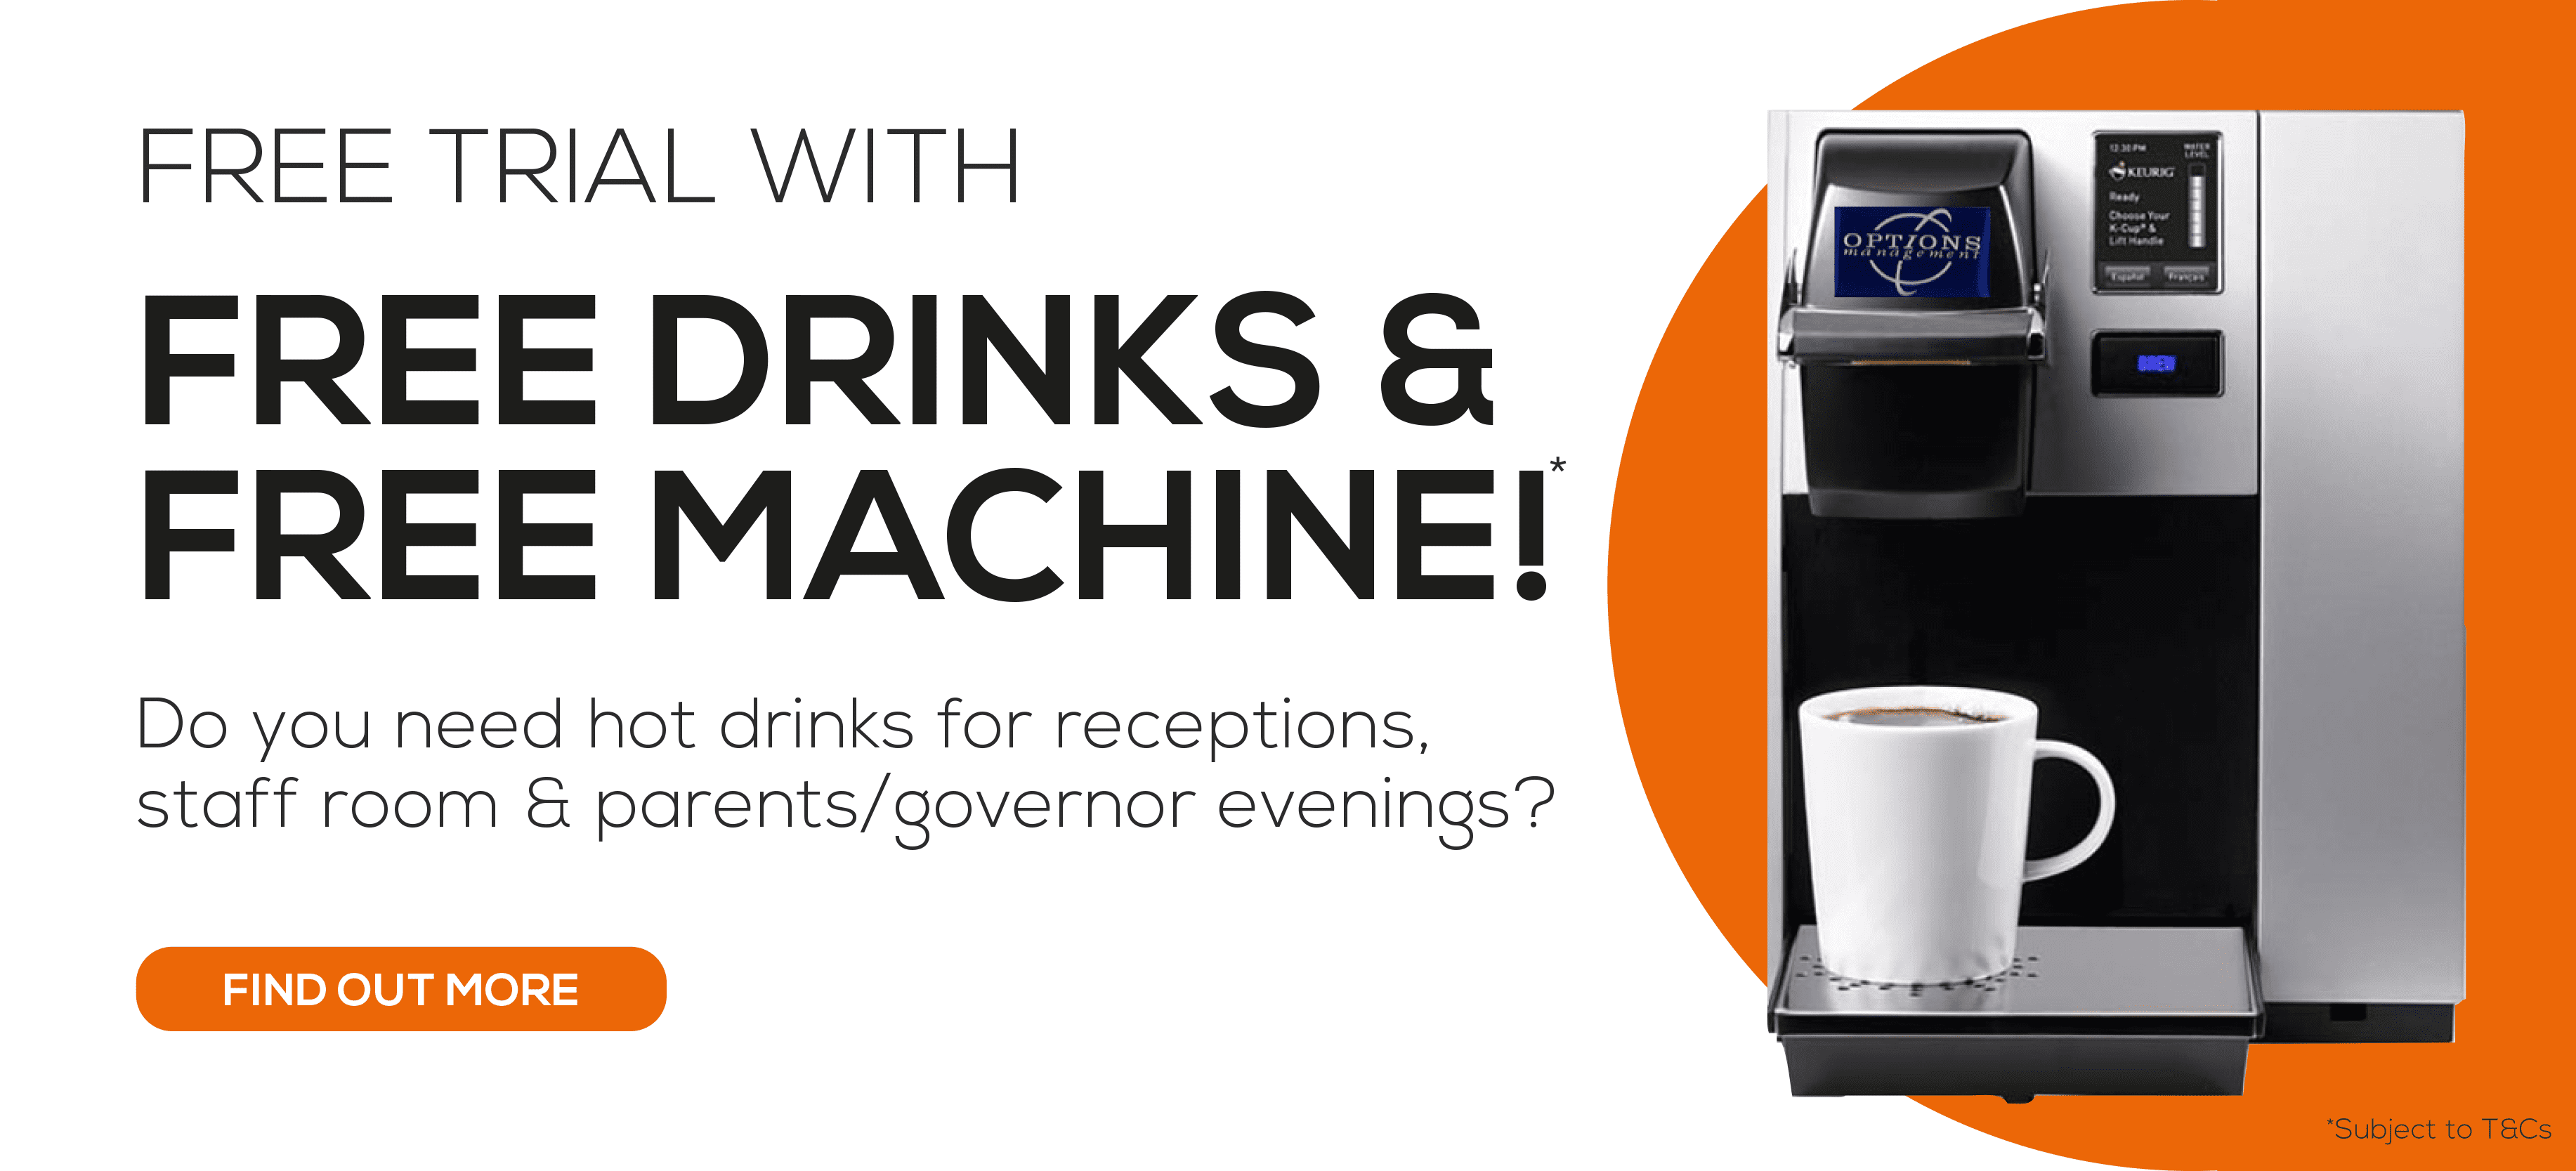 free drinks machine